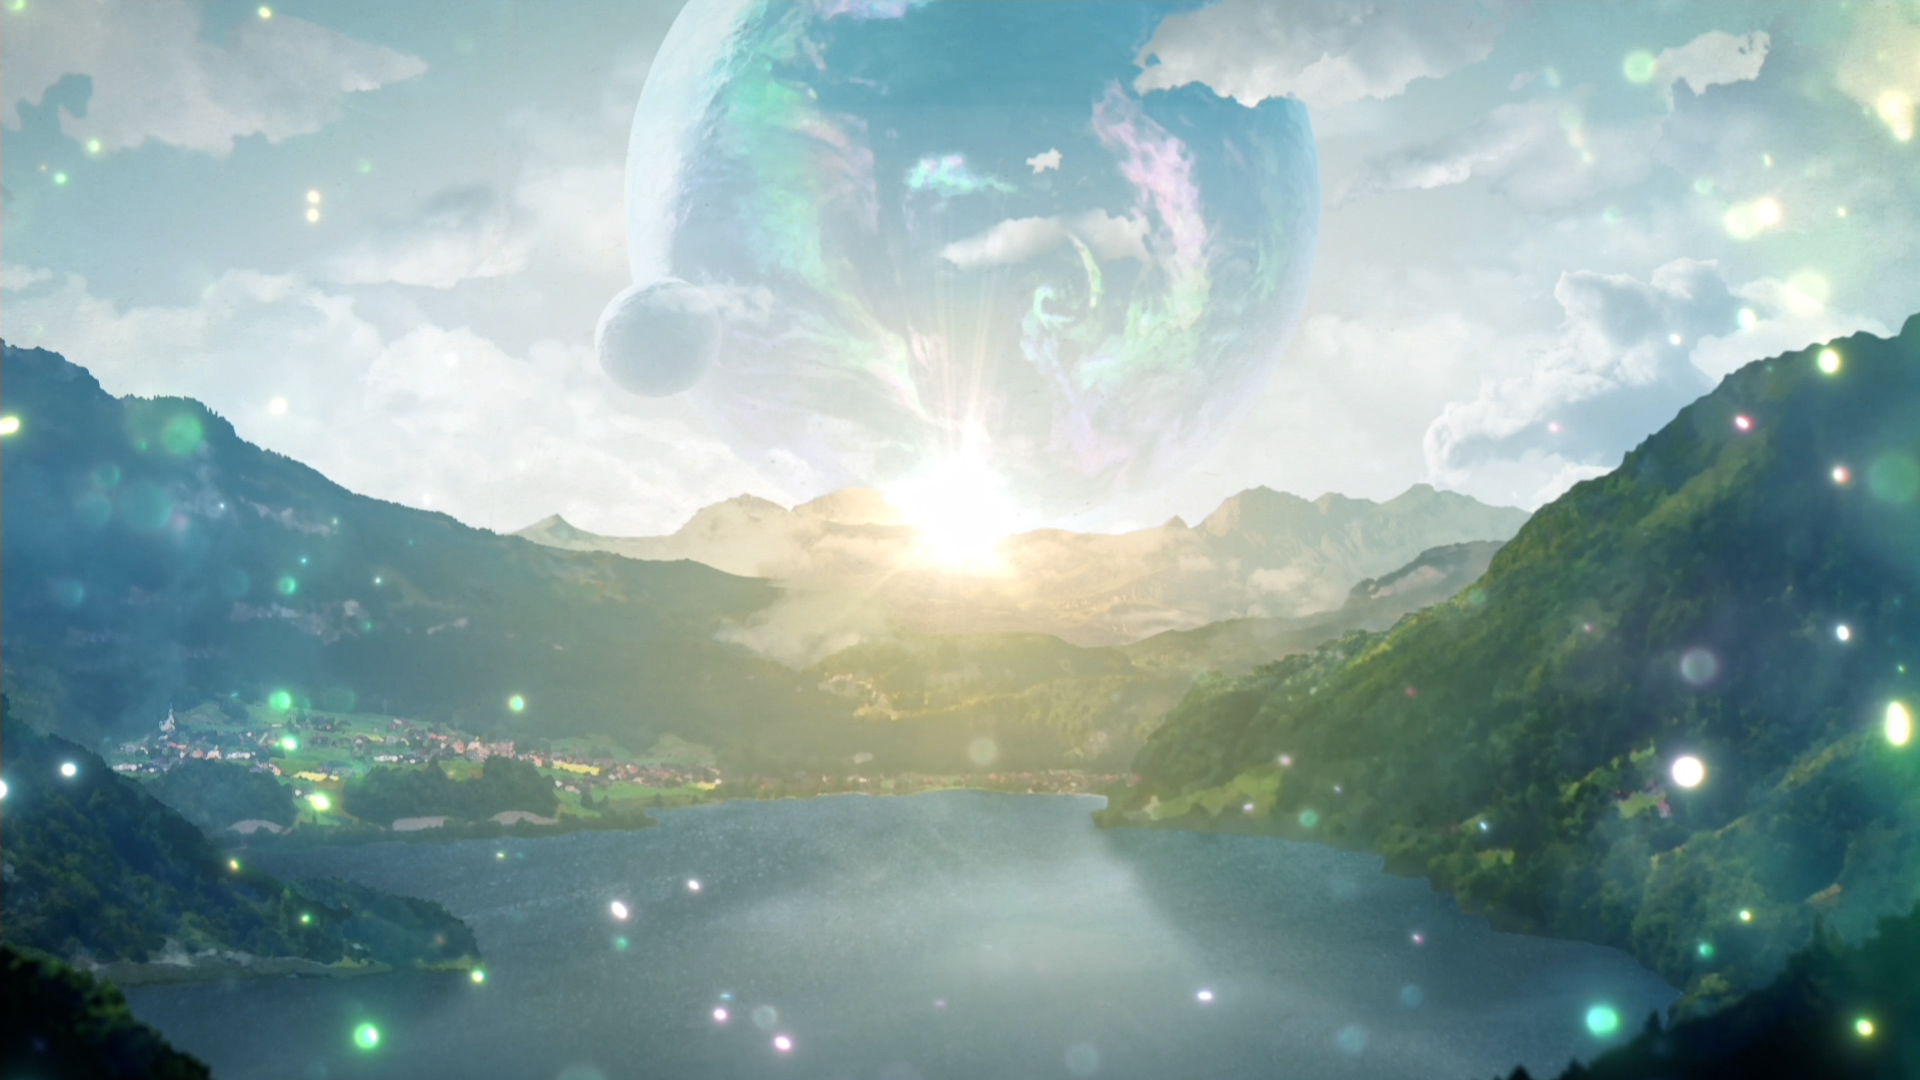 A planet hovers low in the scy over the lake with sparkle effects in Tales of Arise.